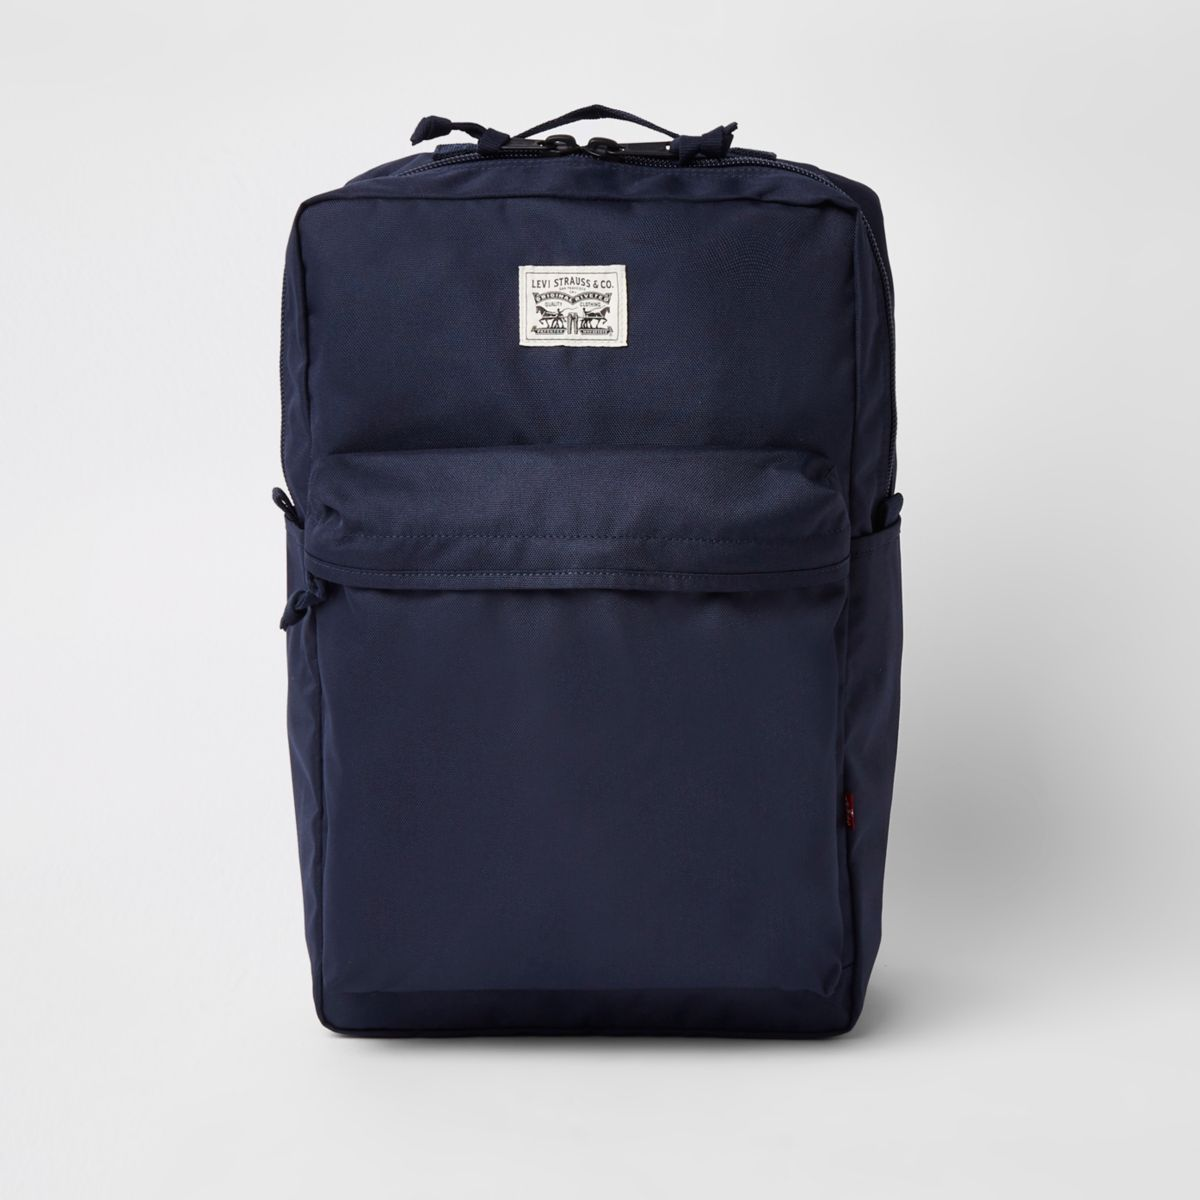 Levi's navy backpack